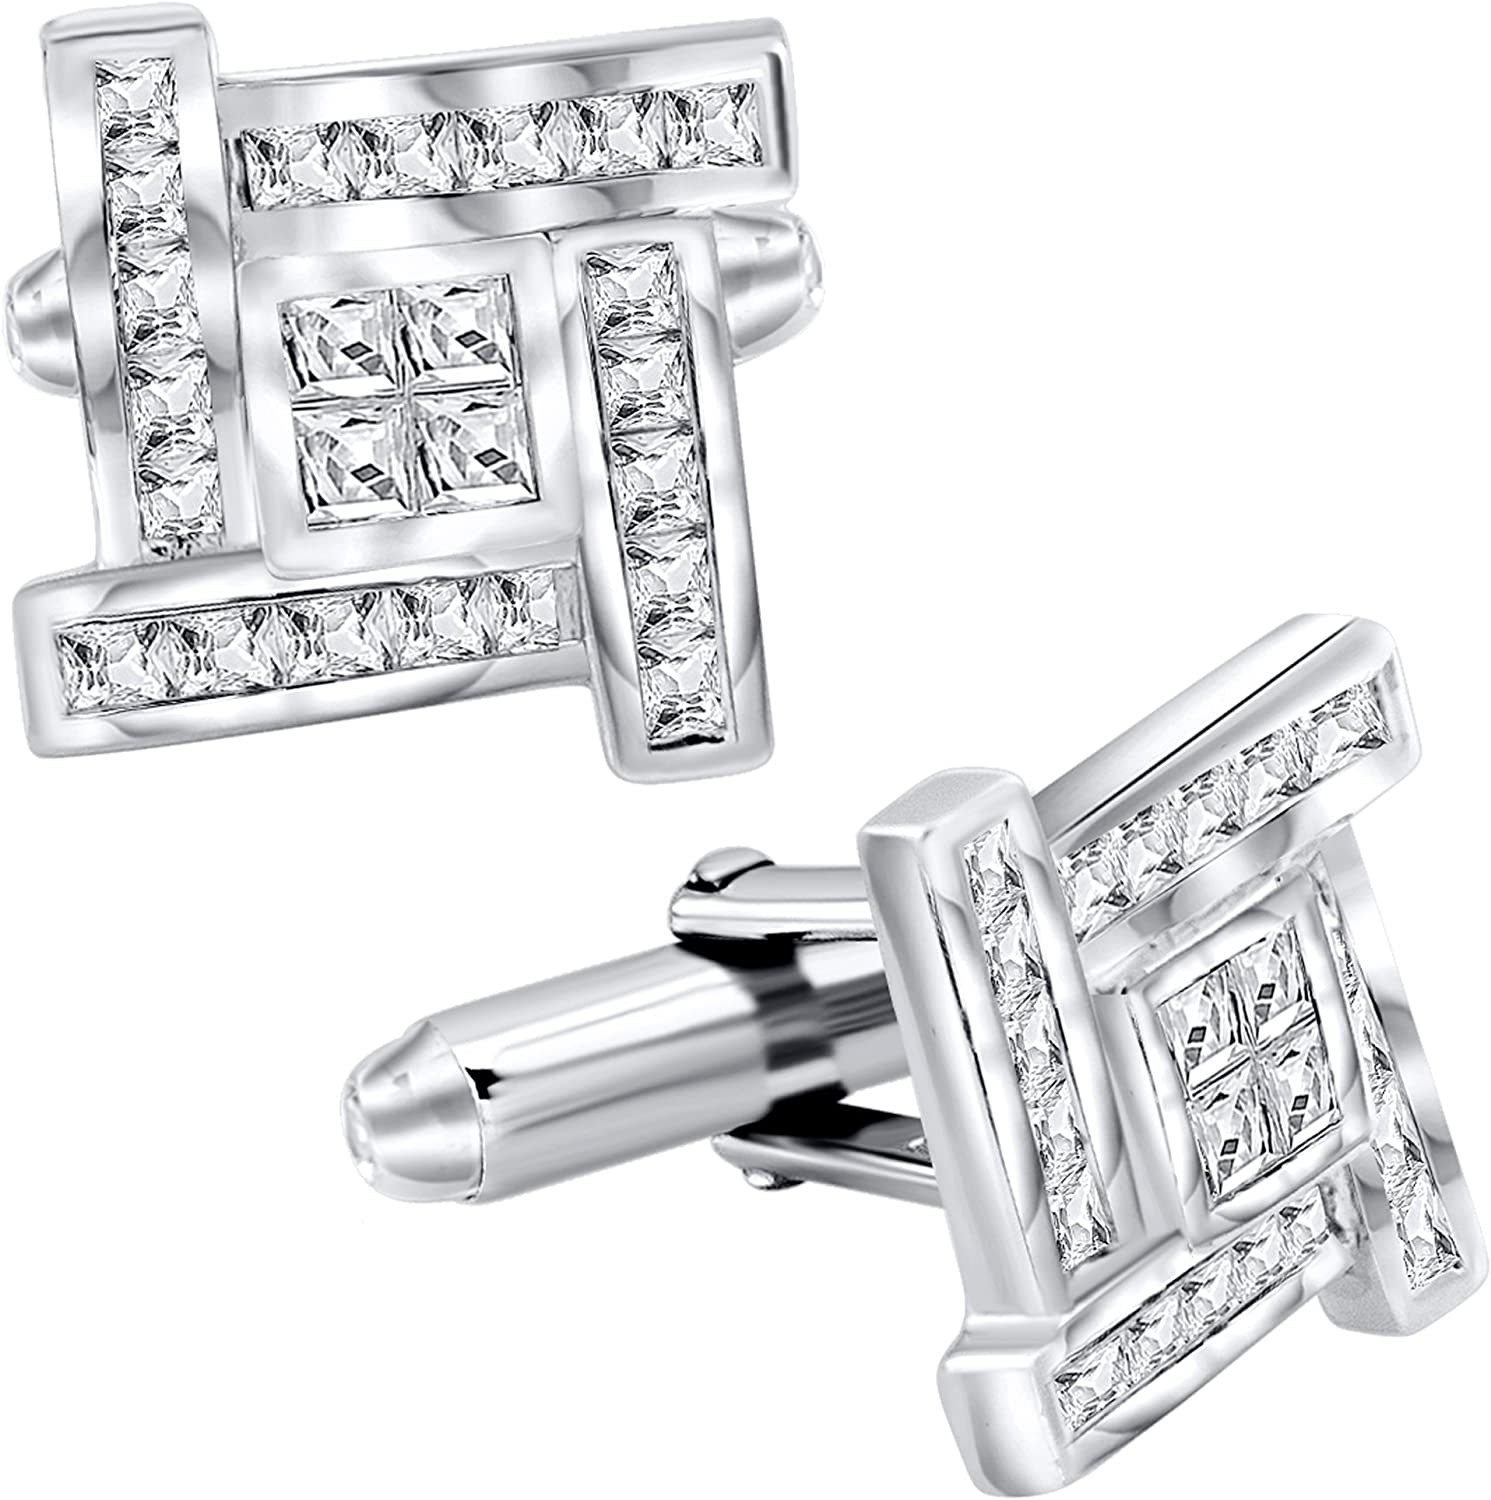 [2-5 Day Delivery] Men's Sterling Silver .925 Cufflinks with Princess-Cut Cubic Zirconia Stones 16mm. By Sterling Manufacturers